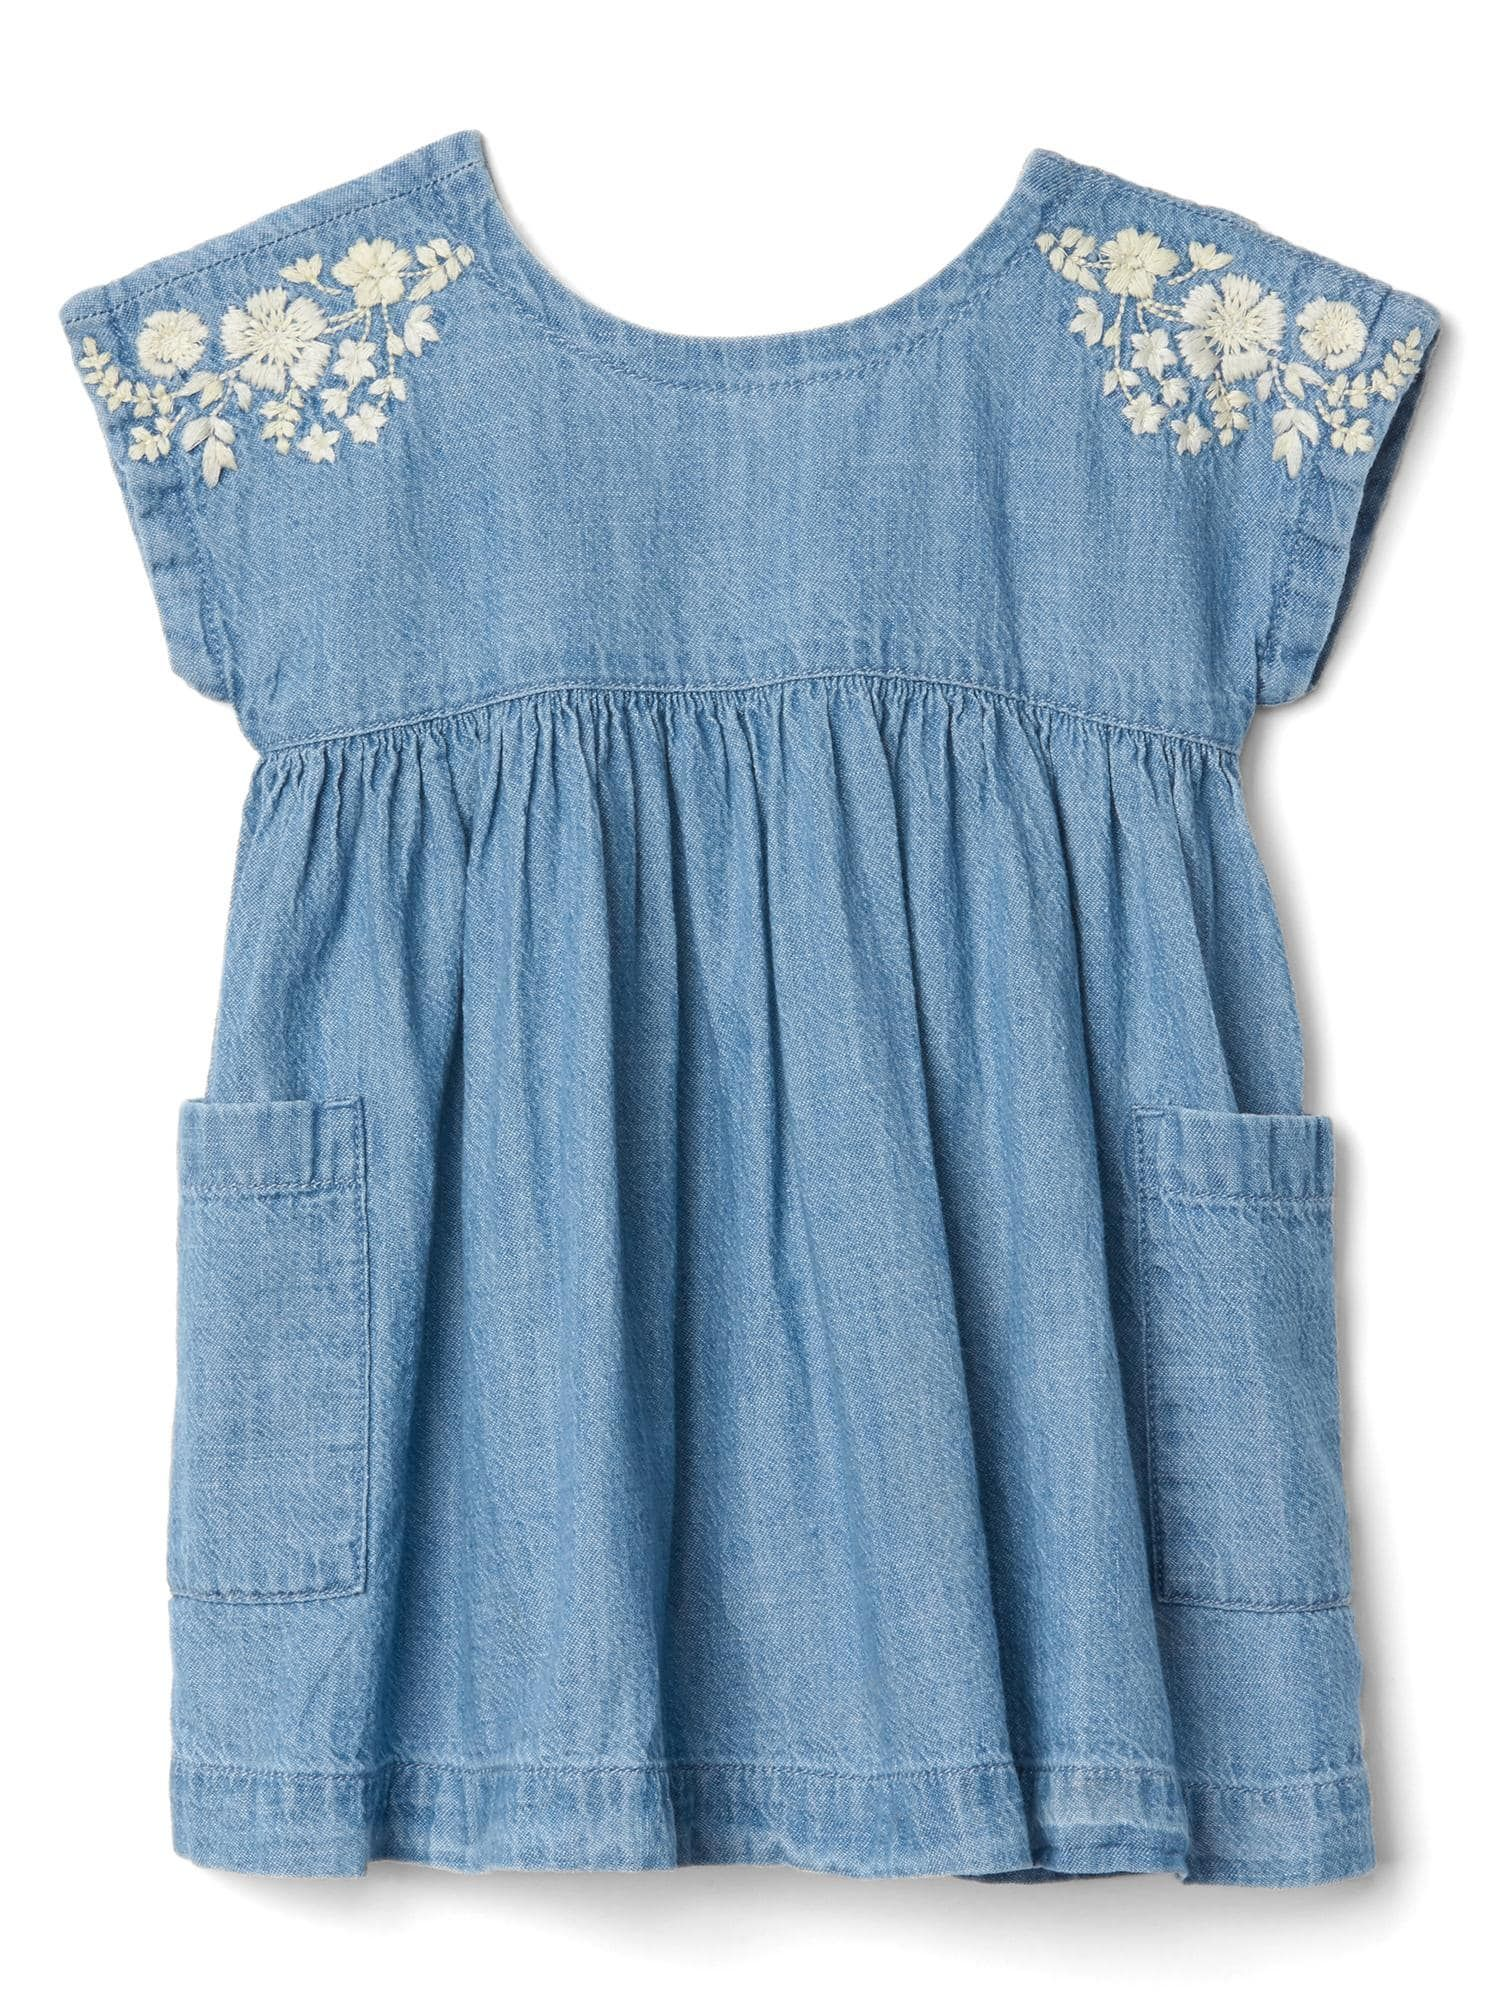 Floral embroidery chambray baby dress gap a little